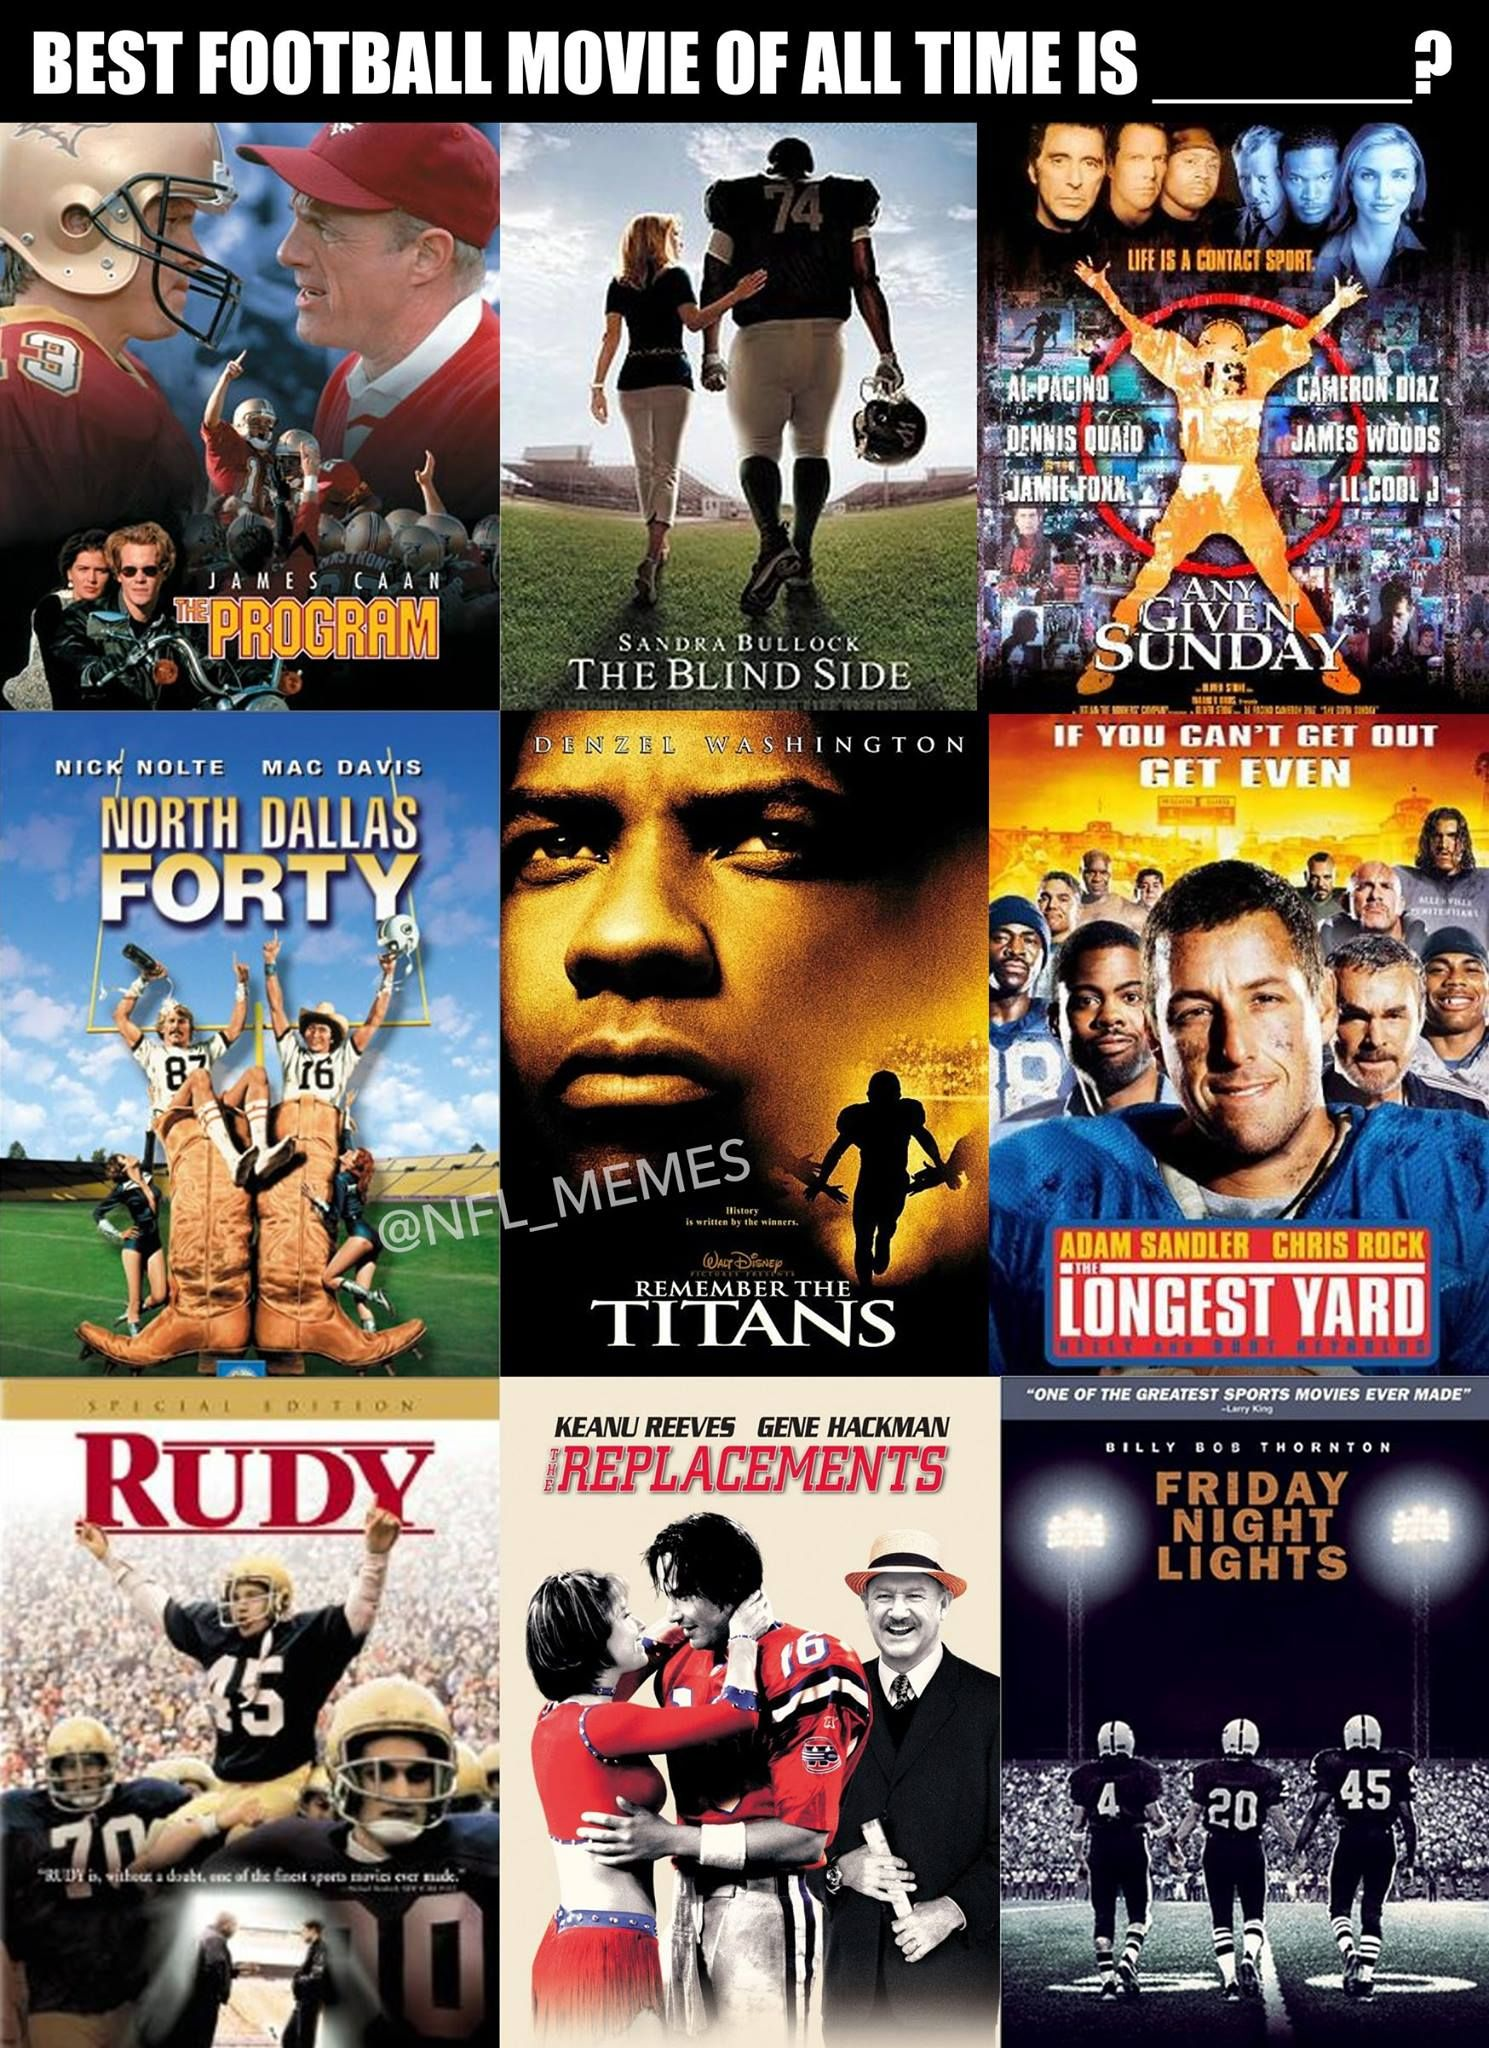 Best football movies of all time remember the titans the